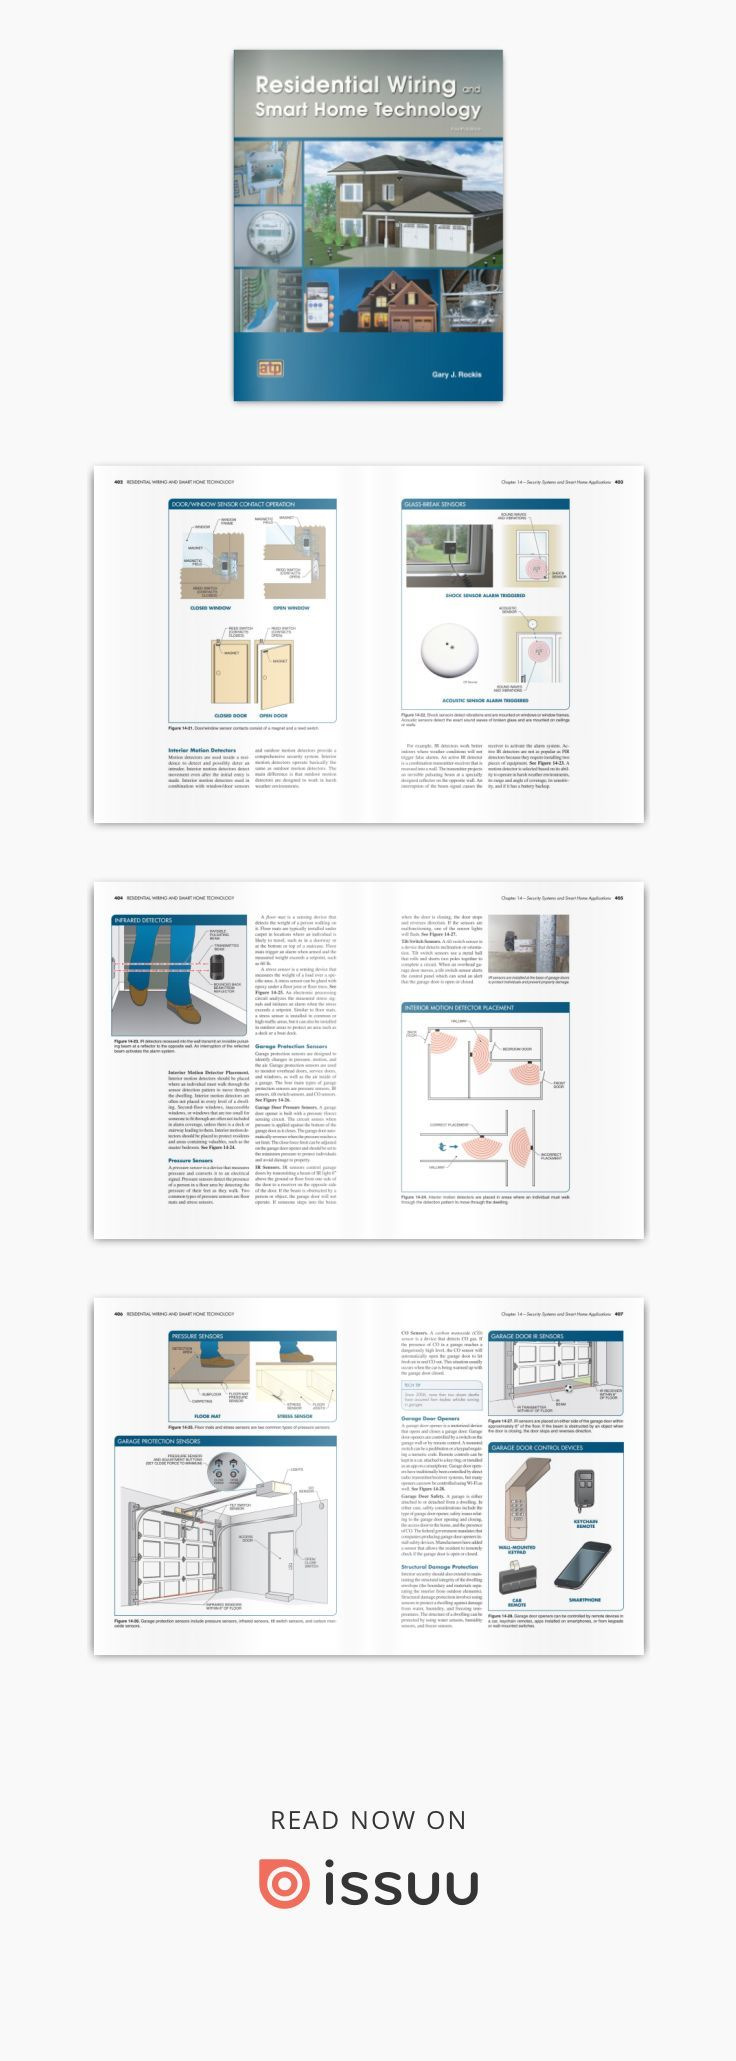 residential wiring and smart home technology residential wiring and smart home technology focuses on the principles installation and maintenance of  [ 736 x 2061 Pixel ]